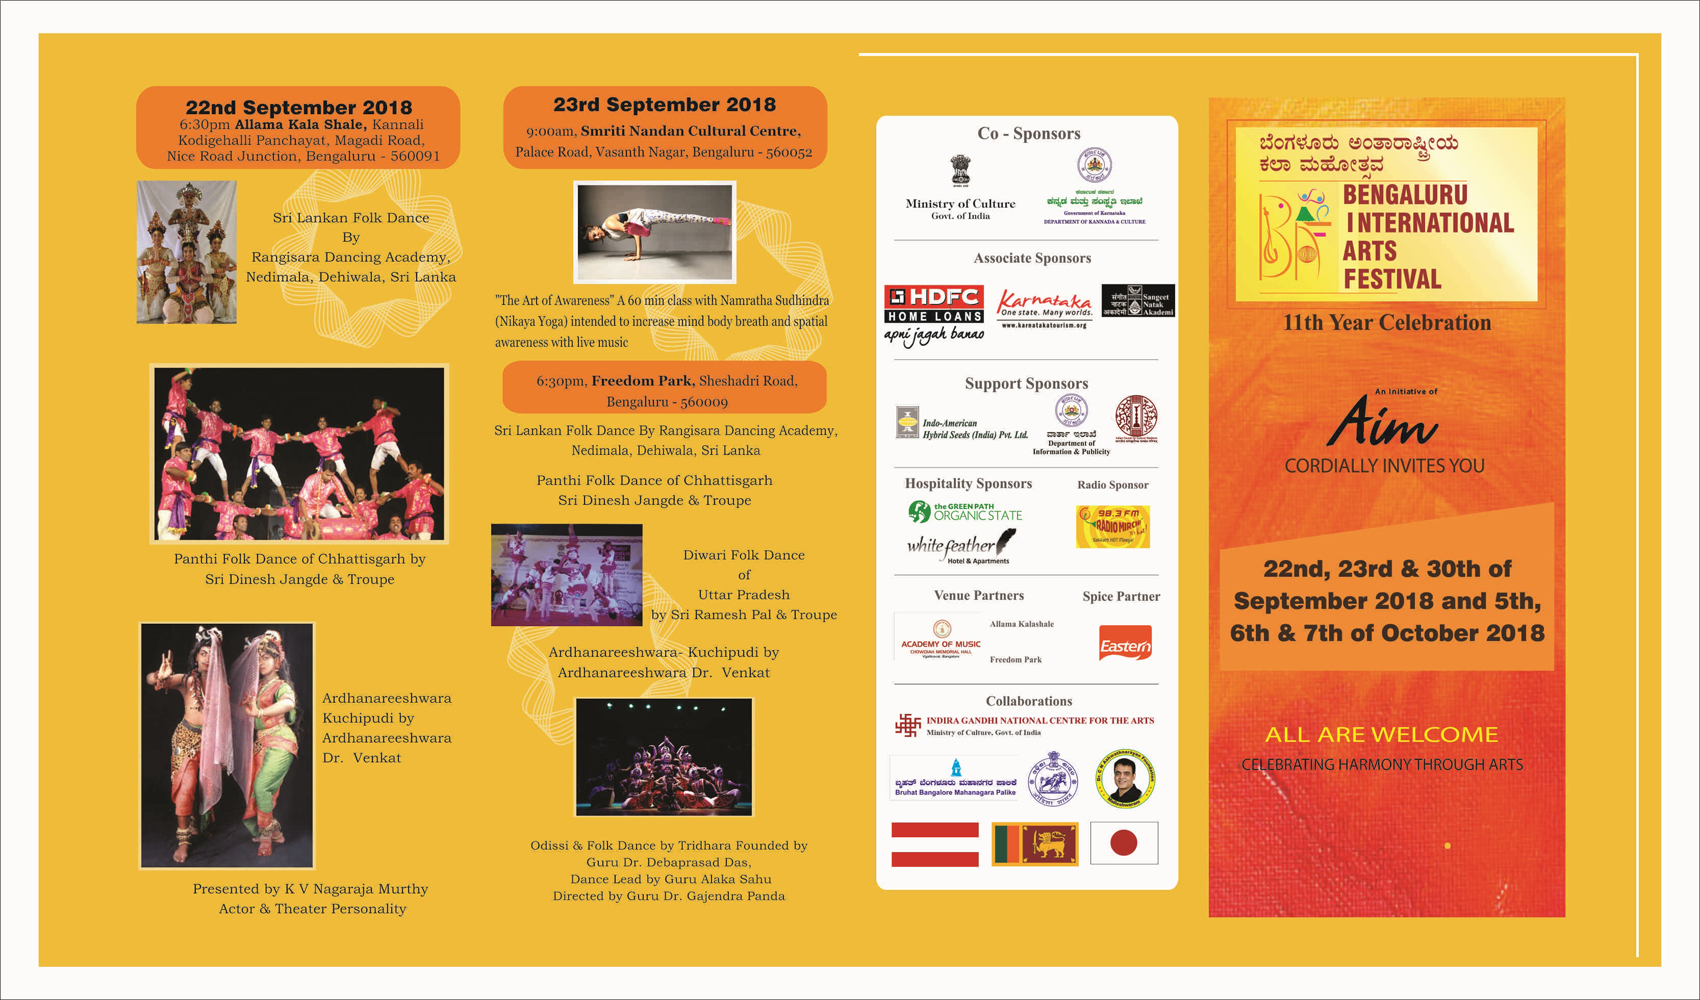 Bengaluru International Arts Festival